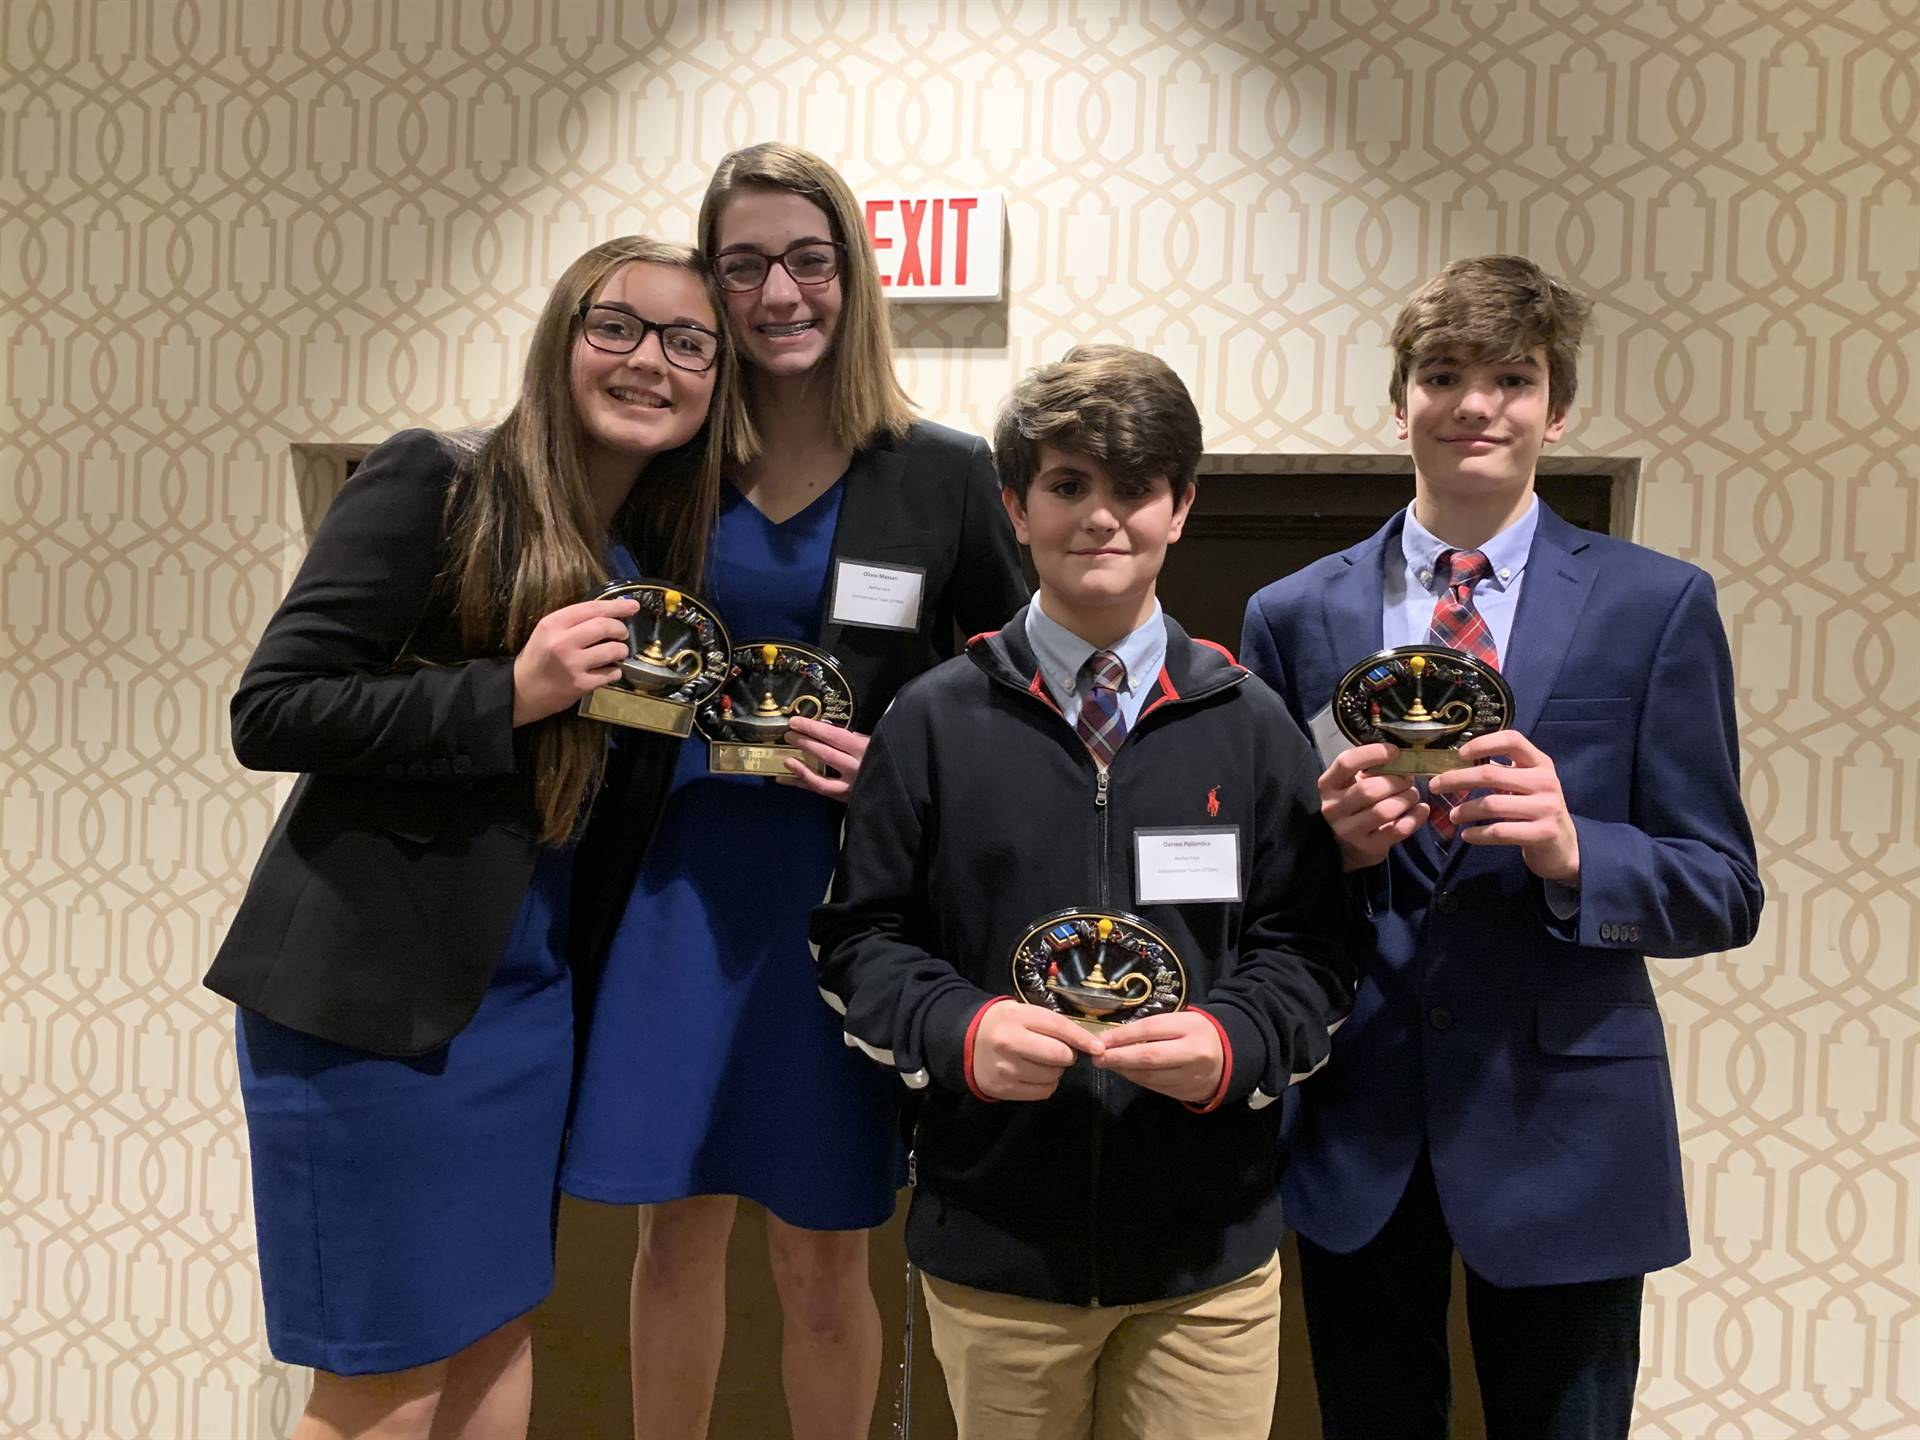 The four students who won the Entrepreneurship Team event